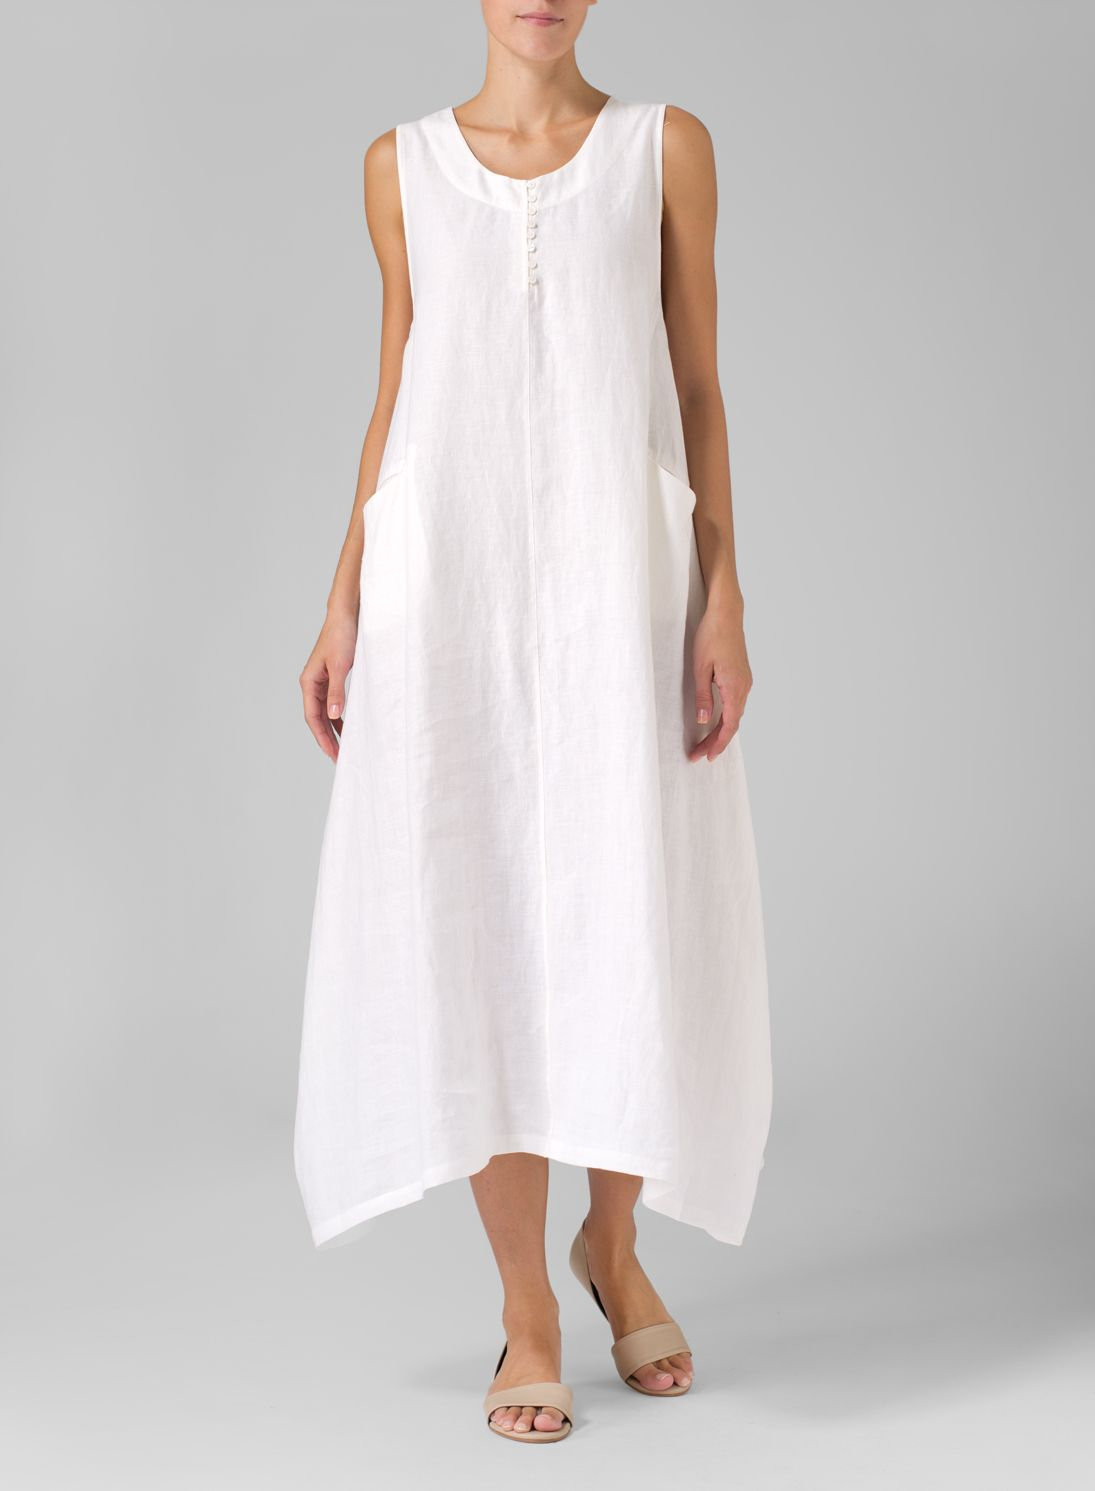 8585f197ff3 Linen Sleeveless Long Dress - Plus Size